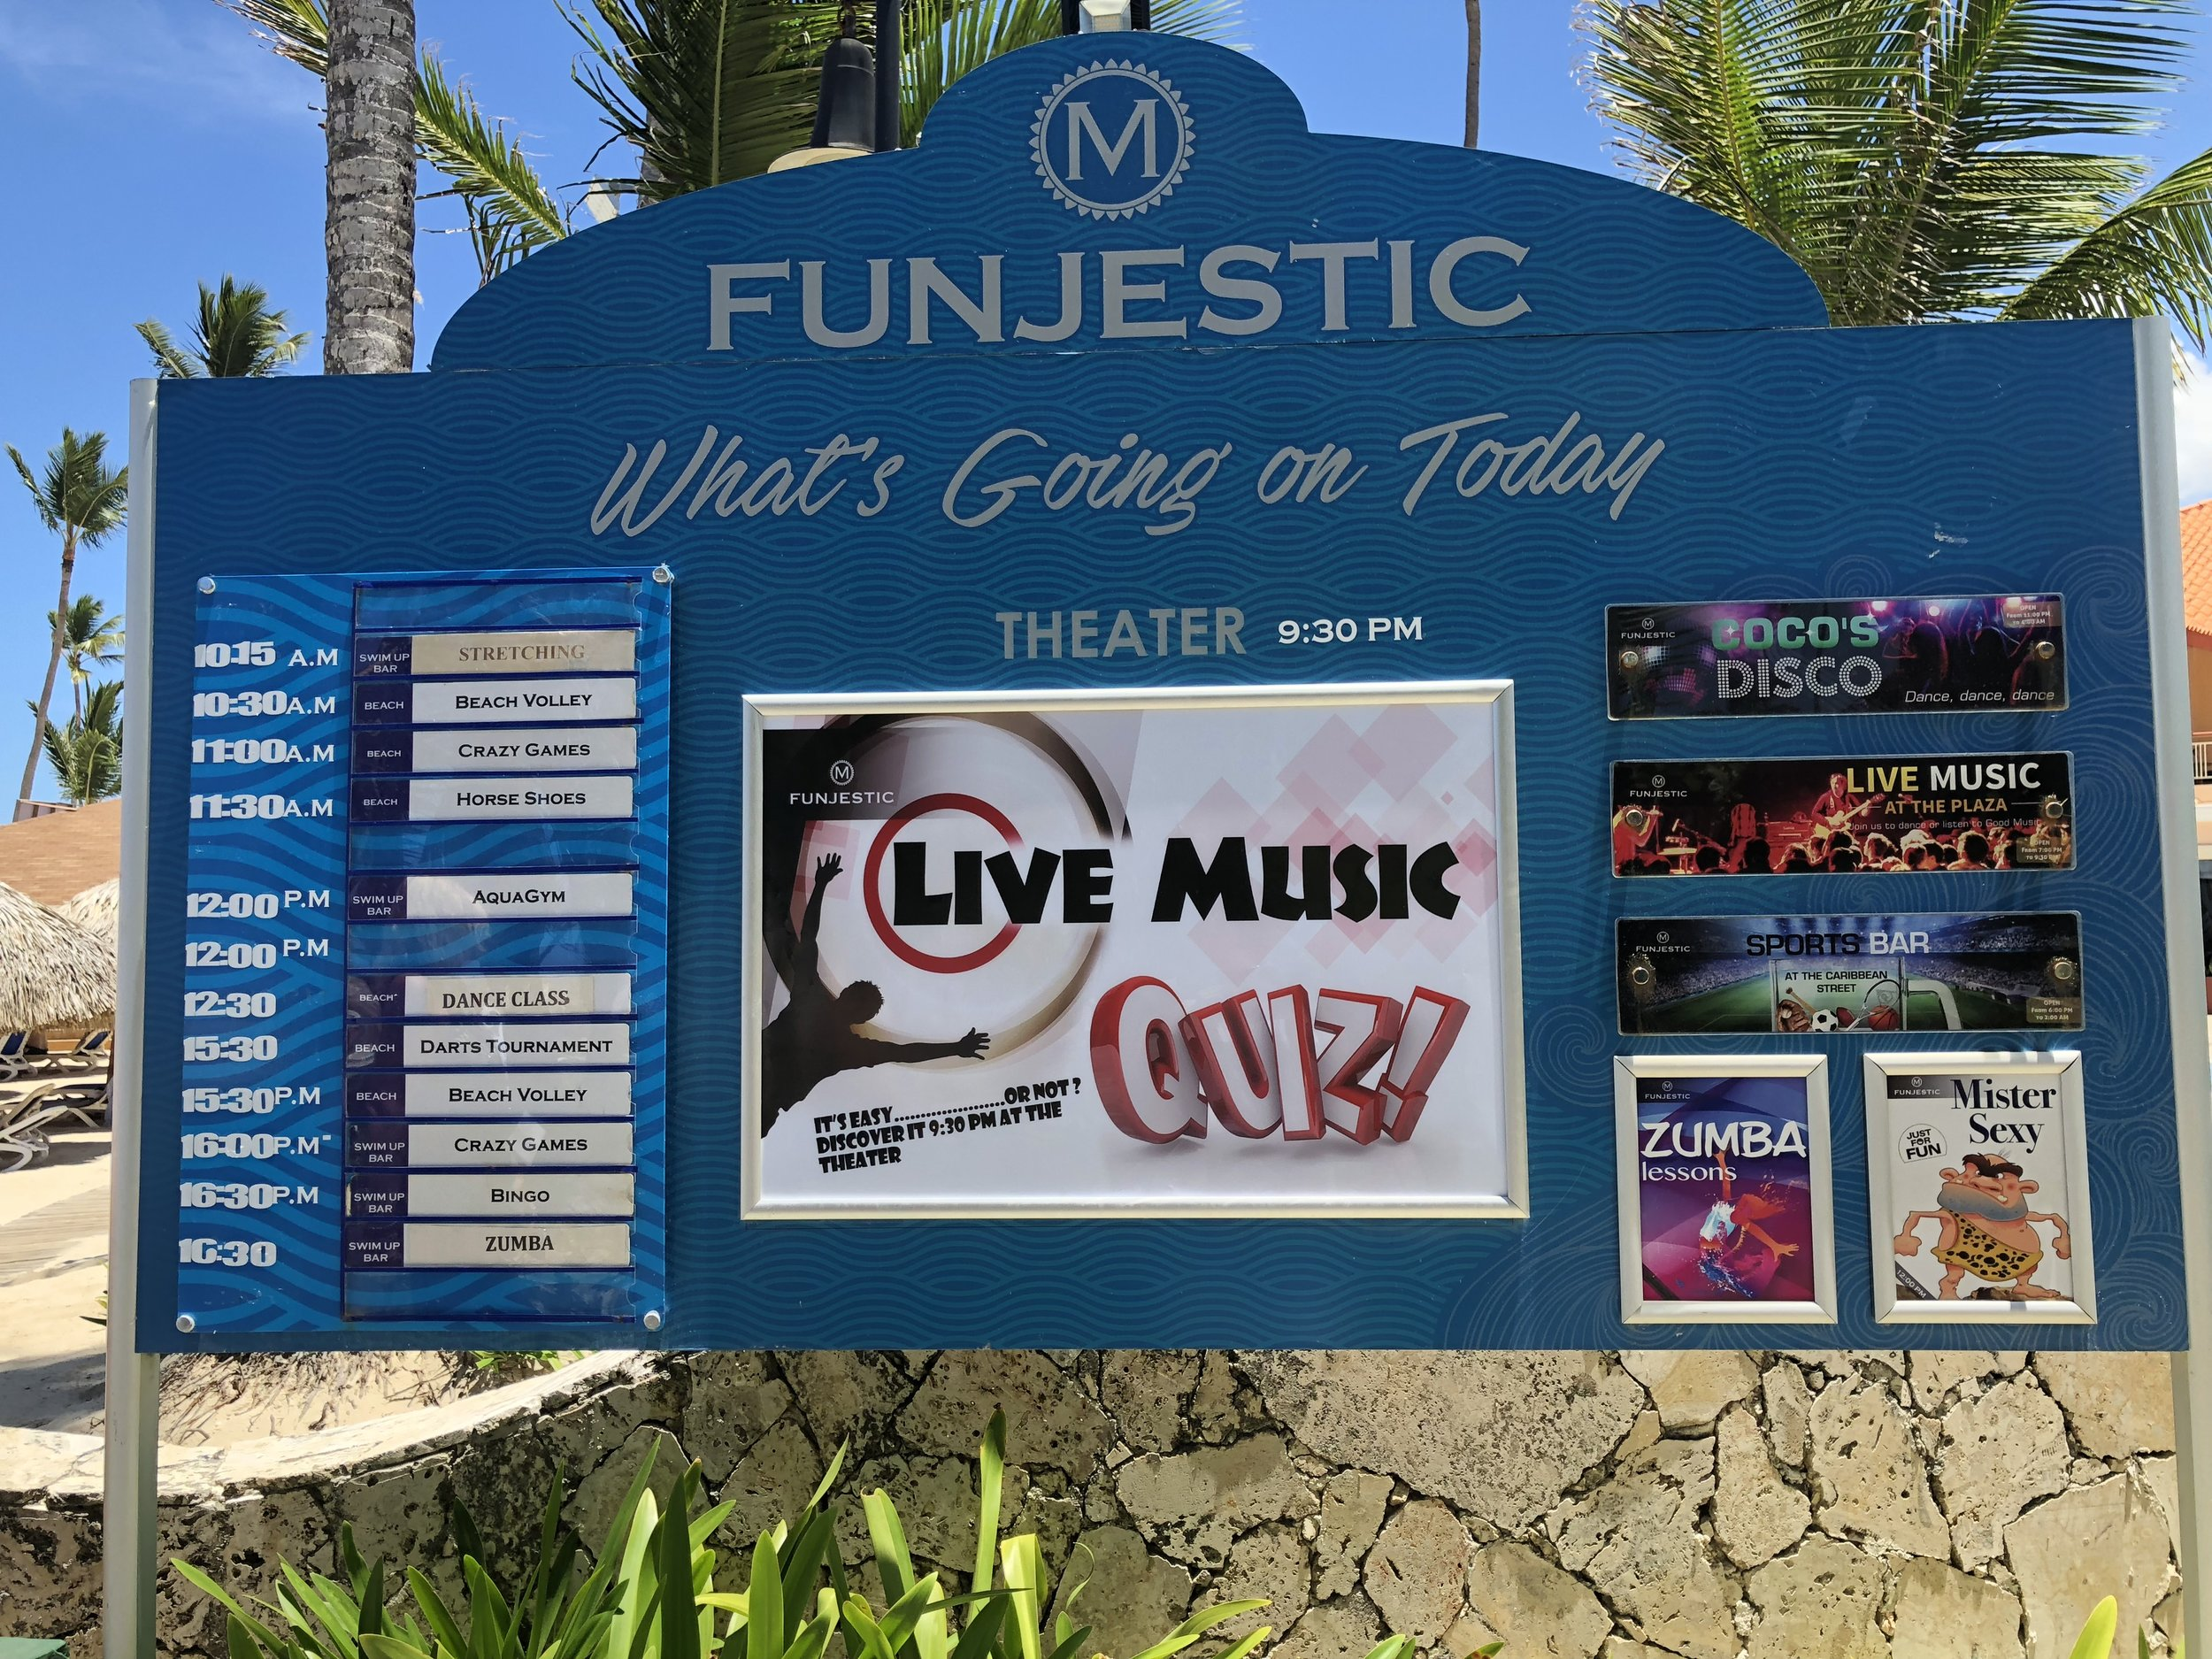 Funjestic boards are located around the property to let you know what events are happening that day.